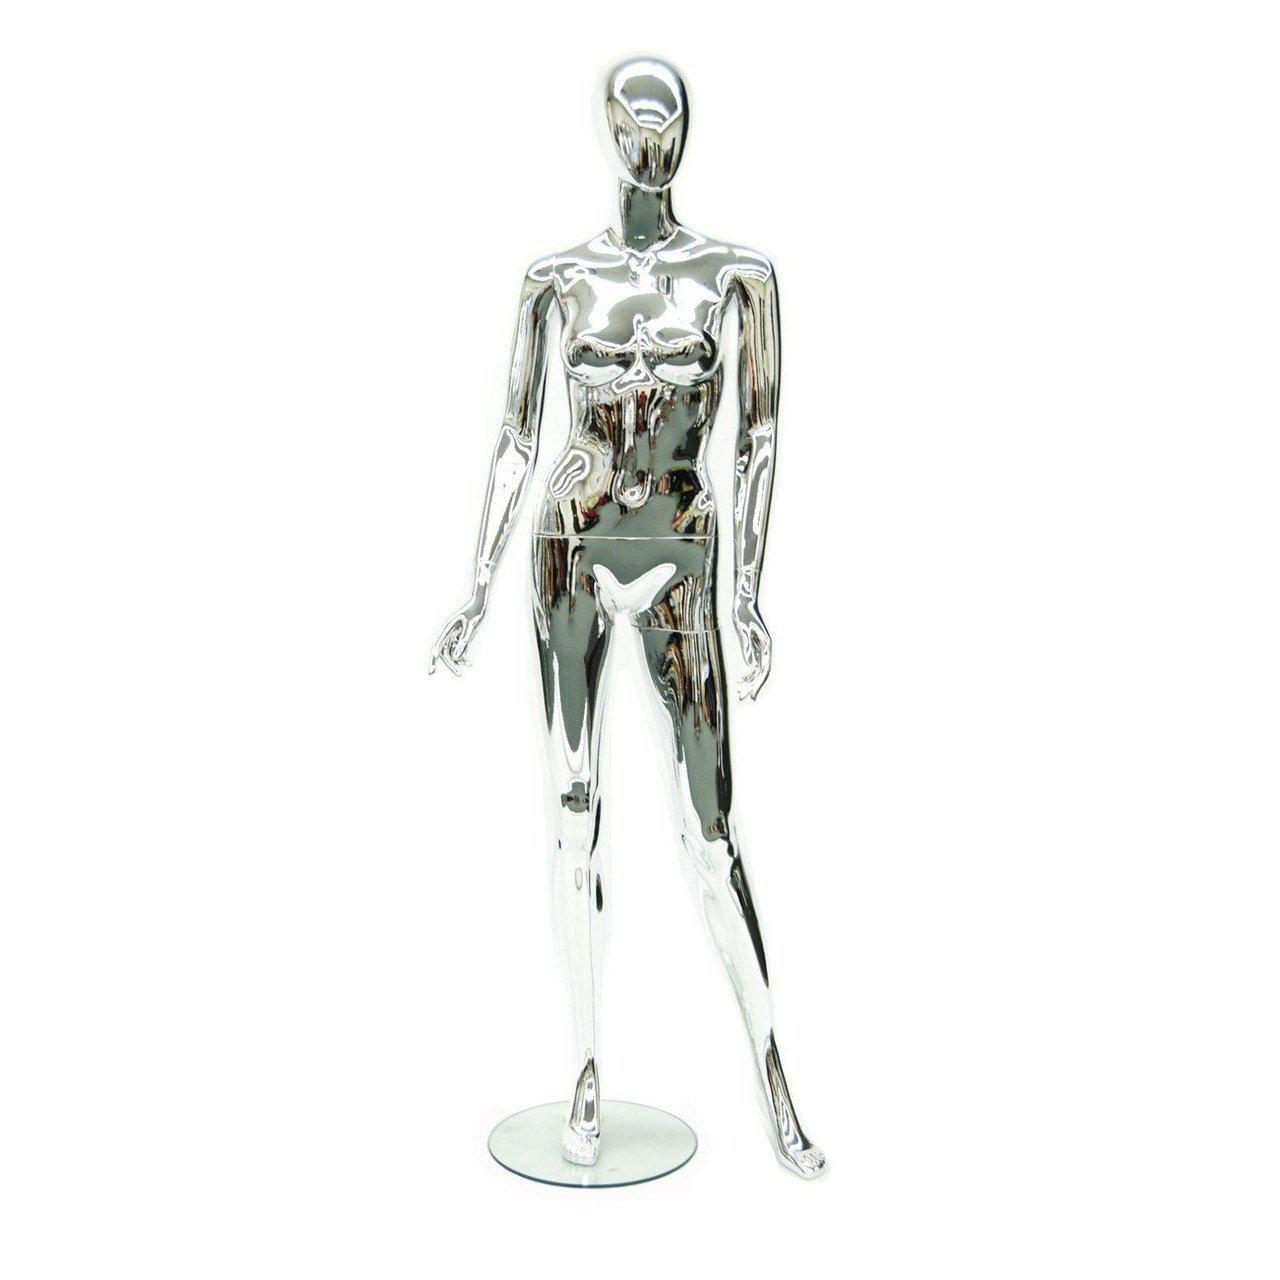 Mannequin Mall Female Chrome Mannequin MM-80155 For Fashion Stores and Retail Shops